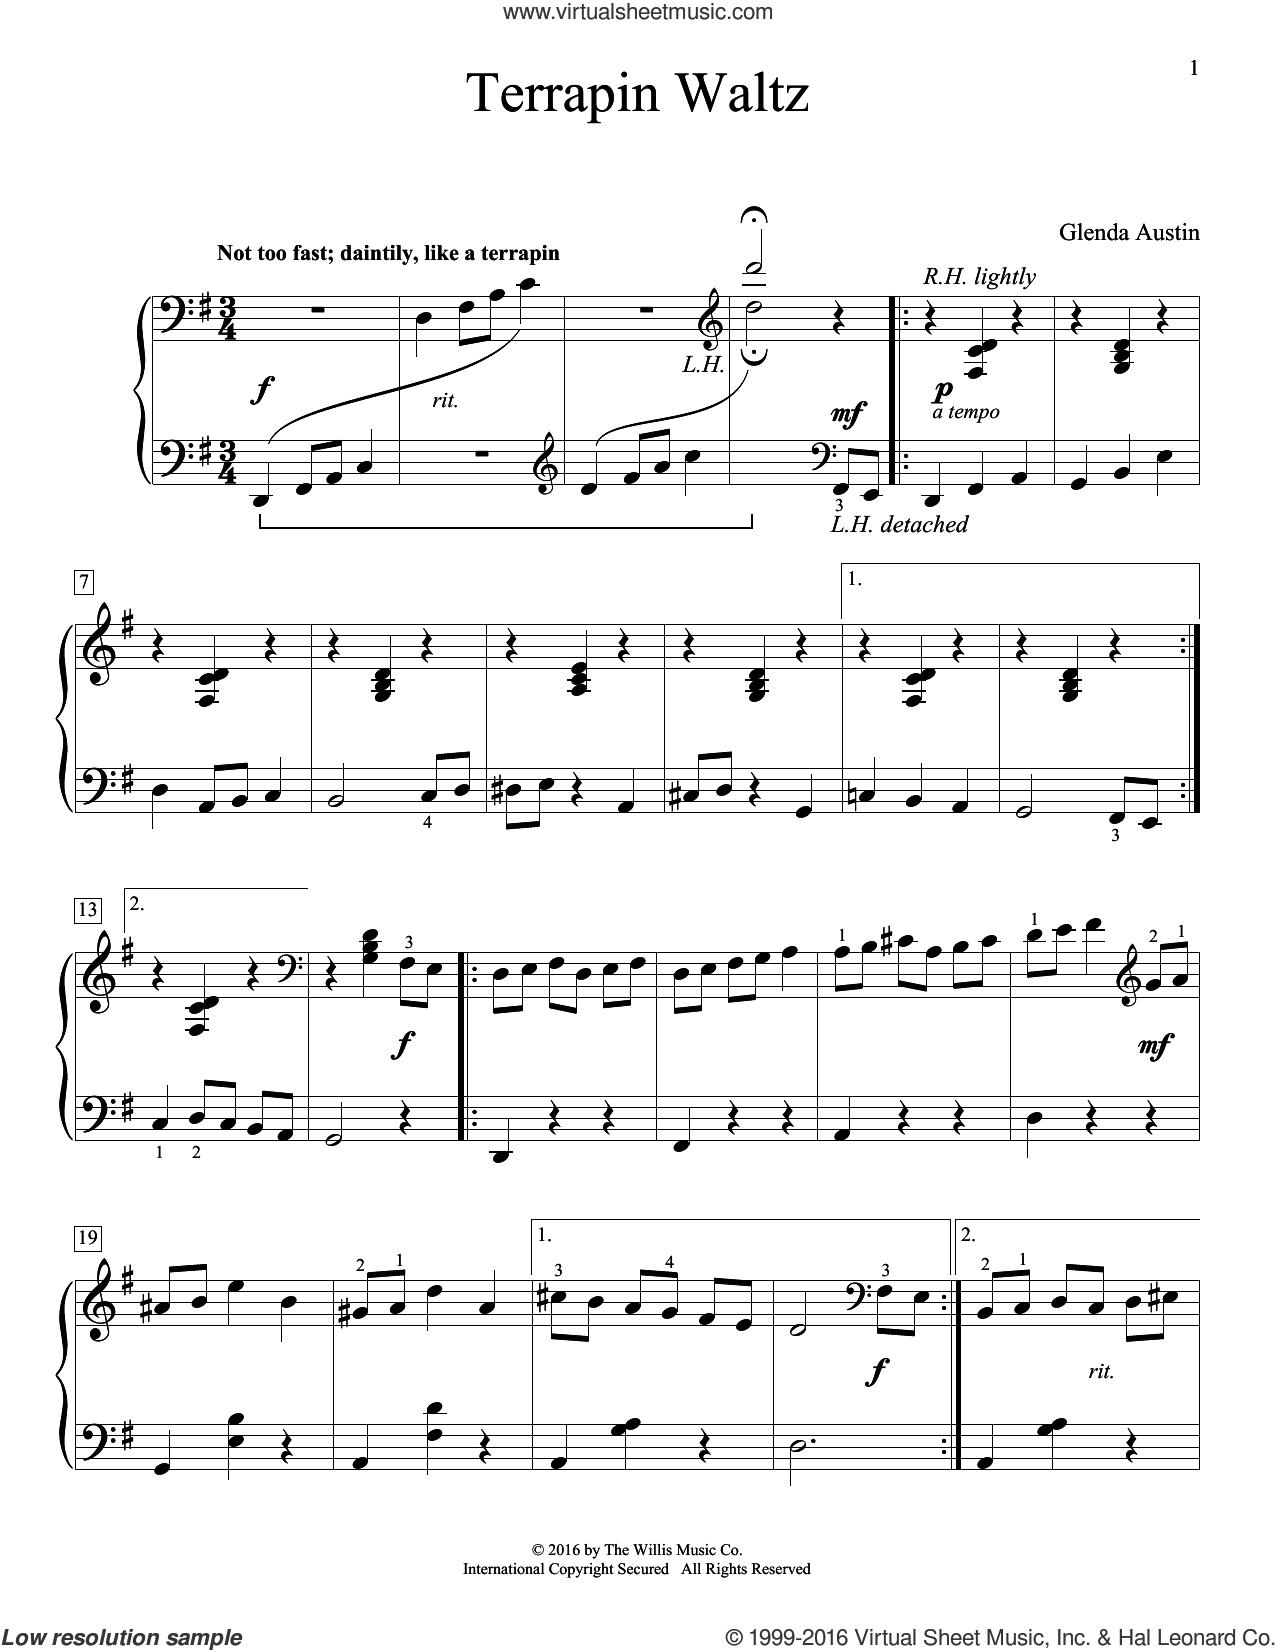 Terrapin Waltz sheet music for piano solo by Glenda Austin. Score Image Preview.